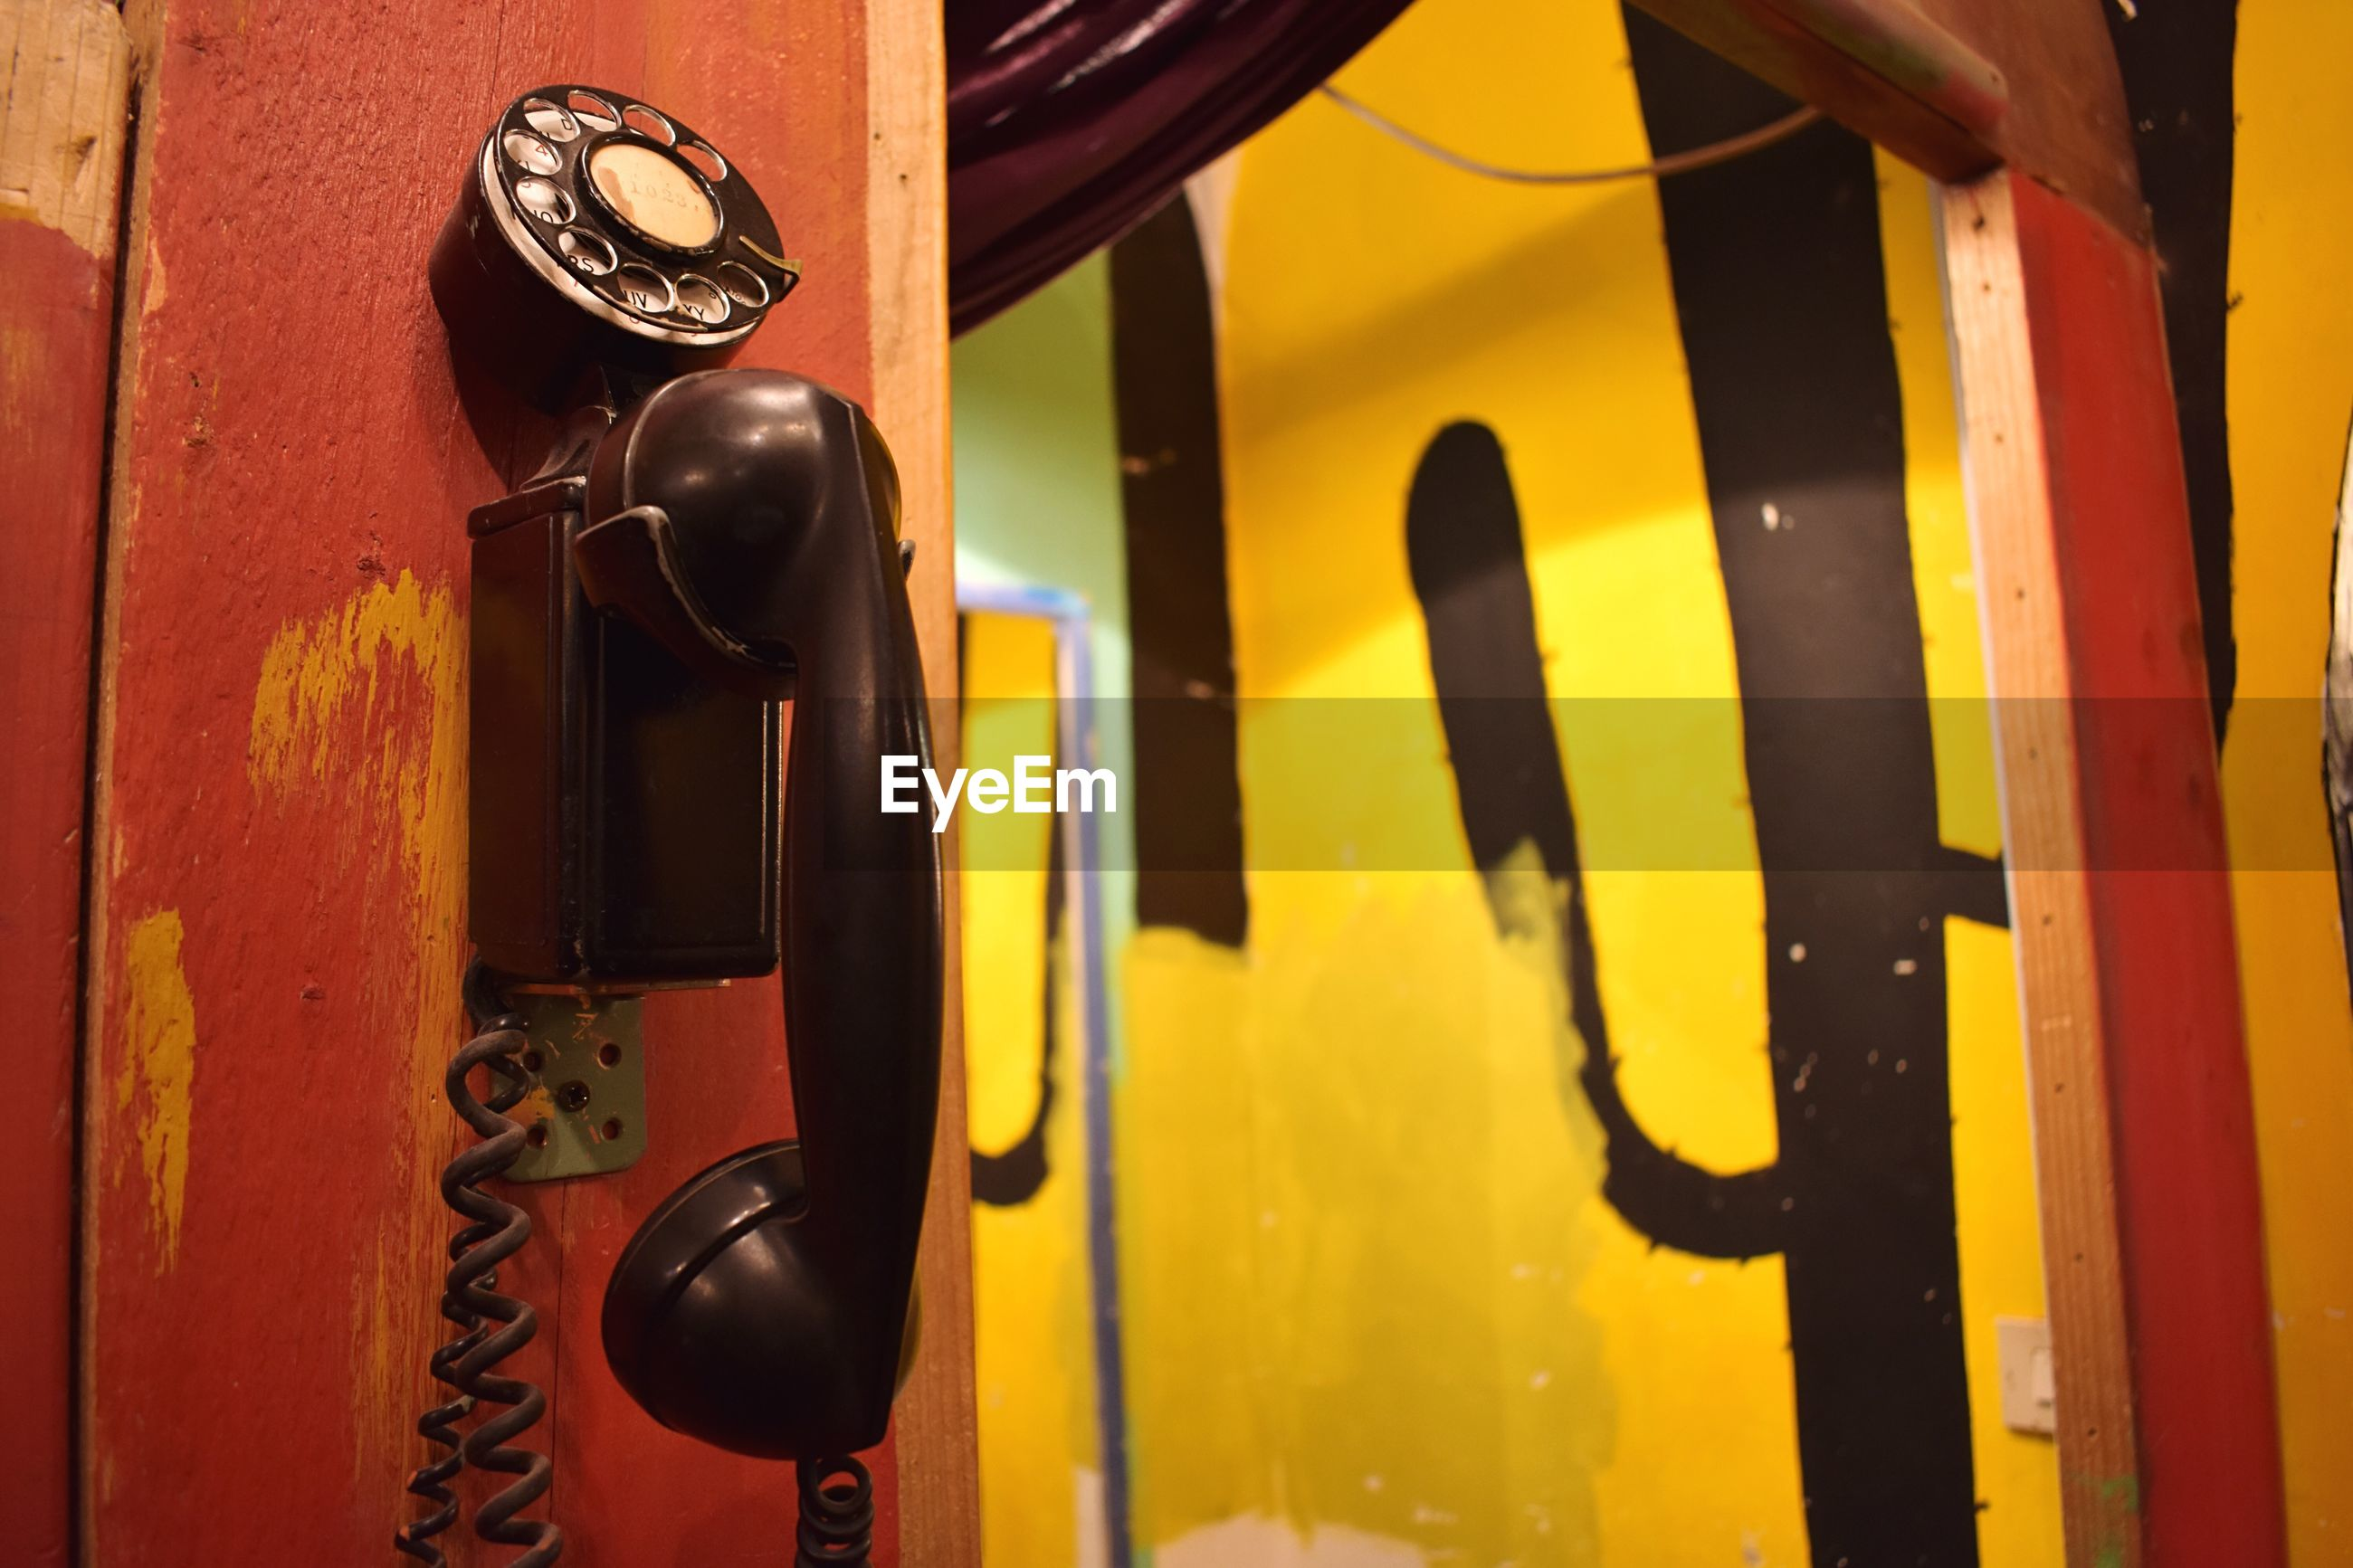 Close-up of rotary phone attached to wall